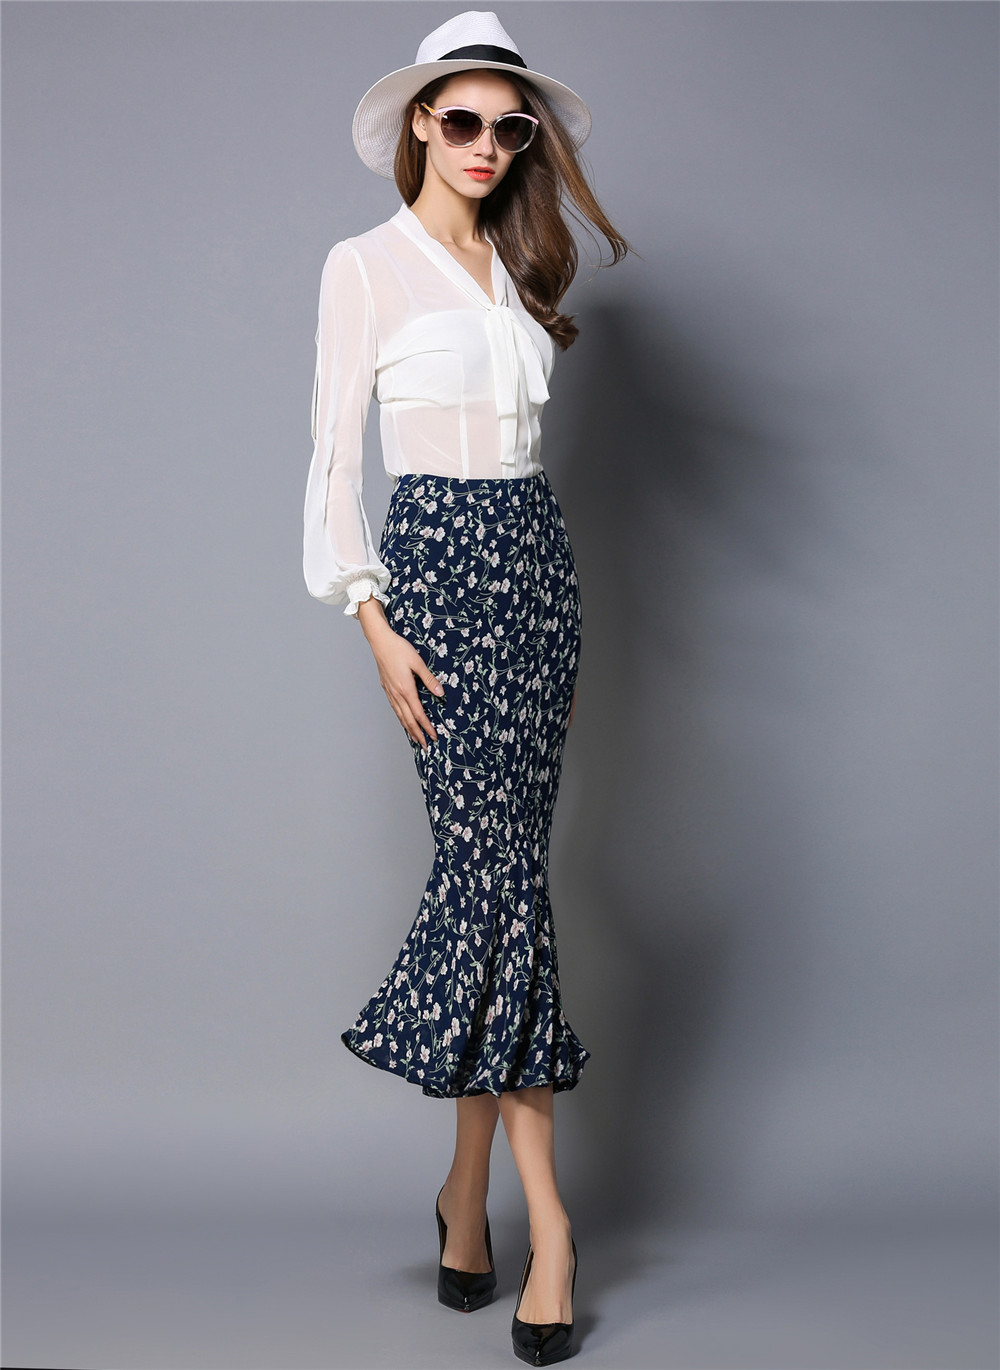 738c7f12af Colourstone Style Floral Chiffon Tulle Skirt Navy Blue High Waist Women  Skirt Sexy Slim Long fishtail Pencil Designer Skirt-in Skirts from Women's  Clothing ...